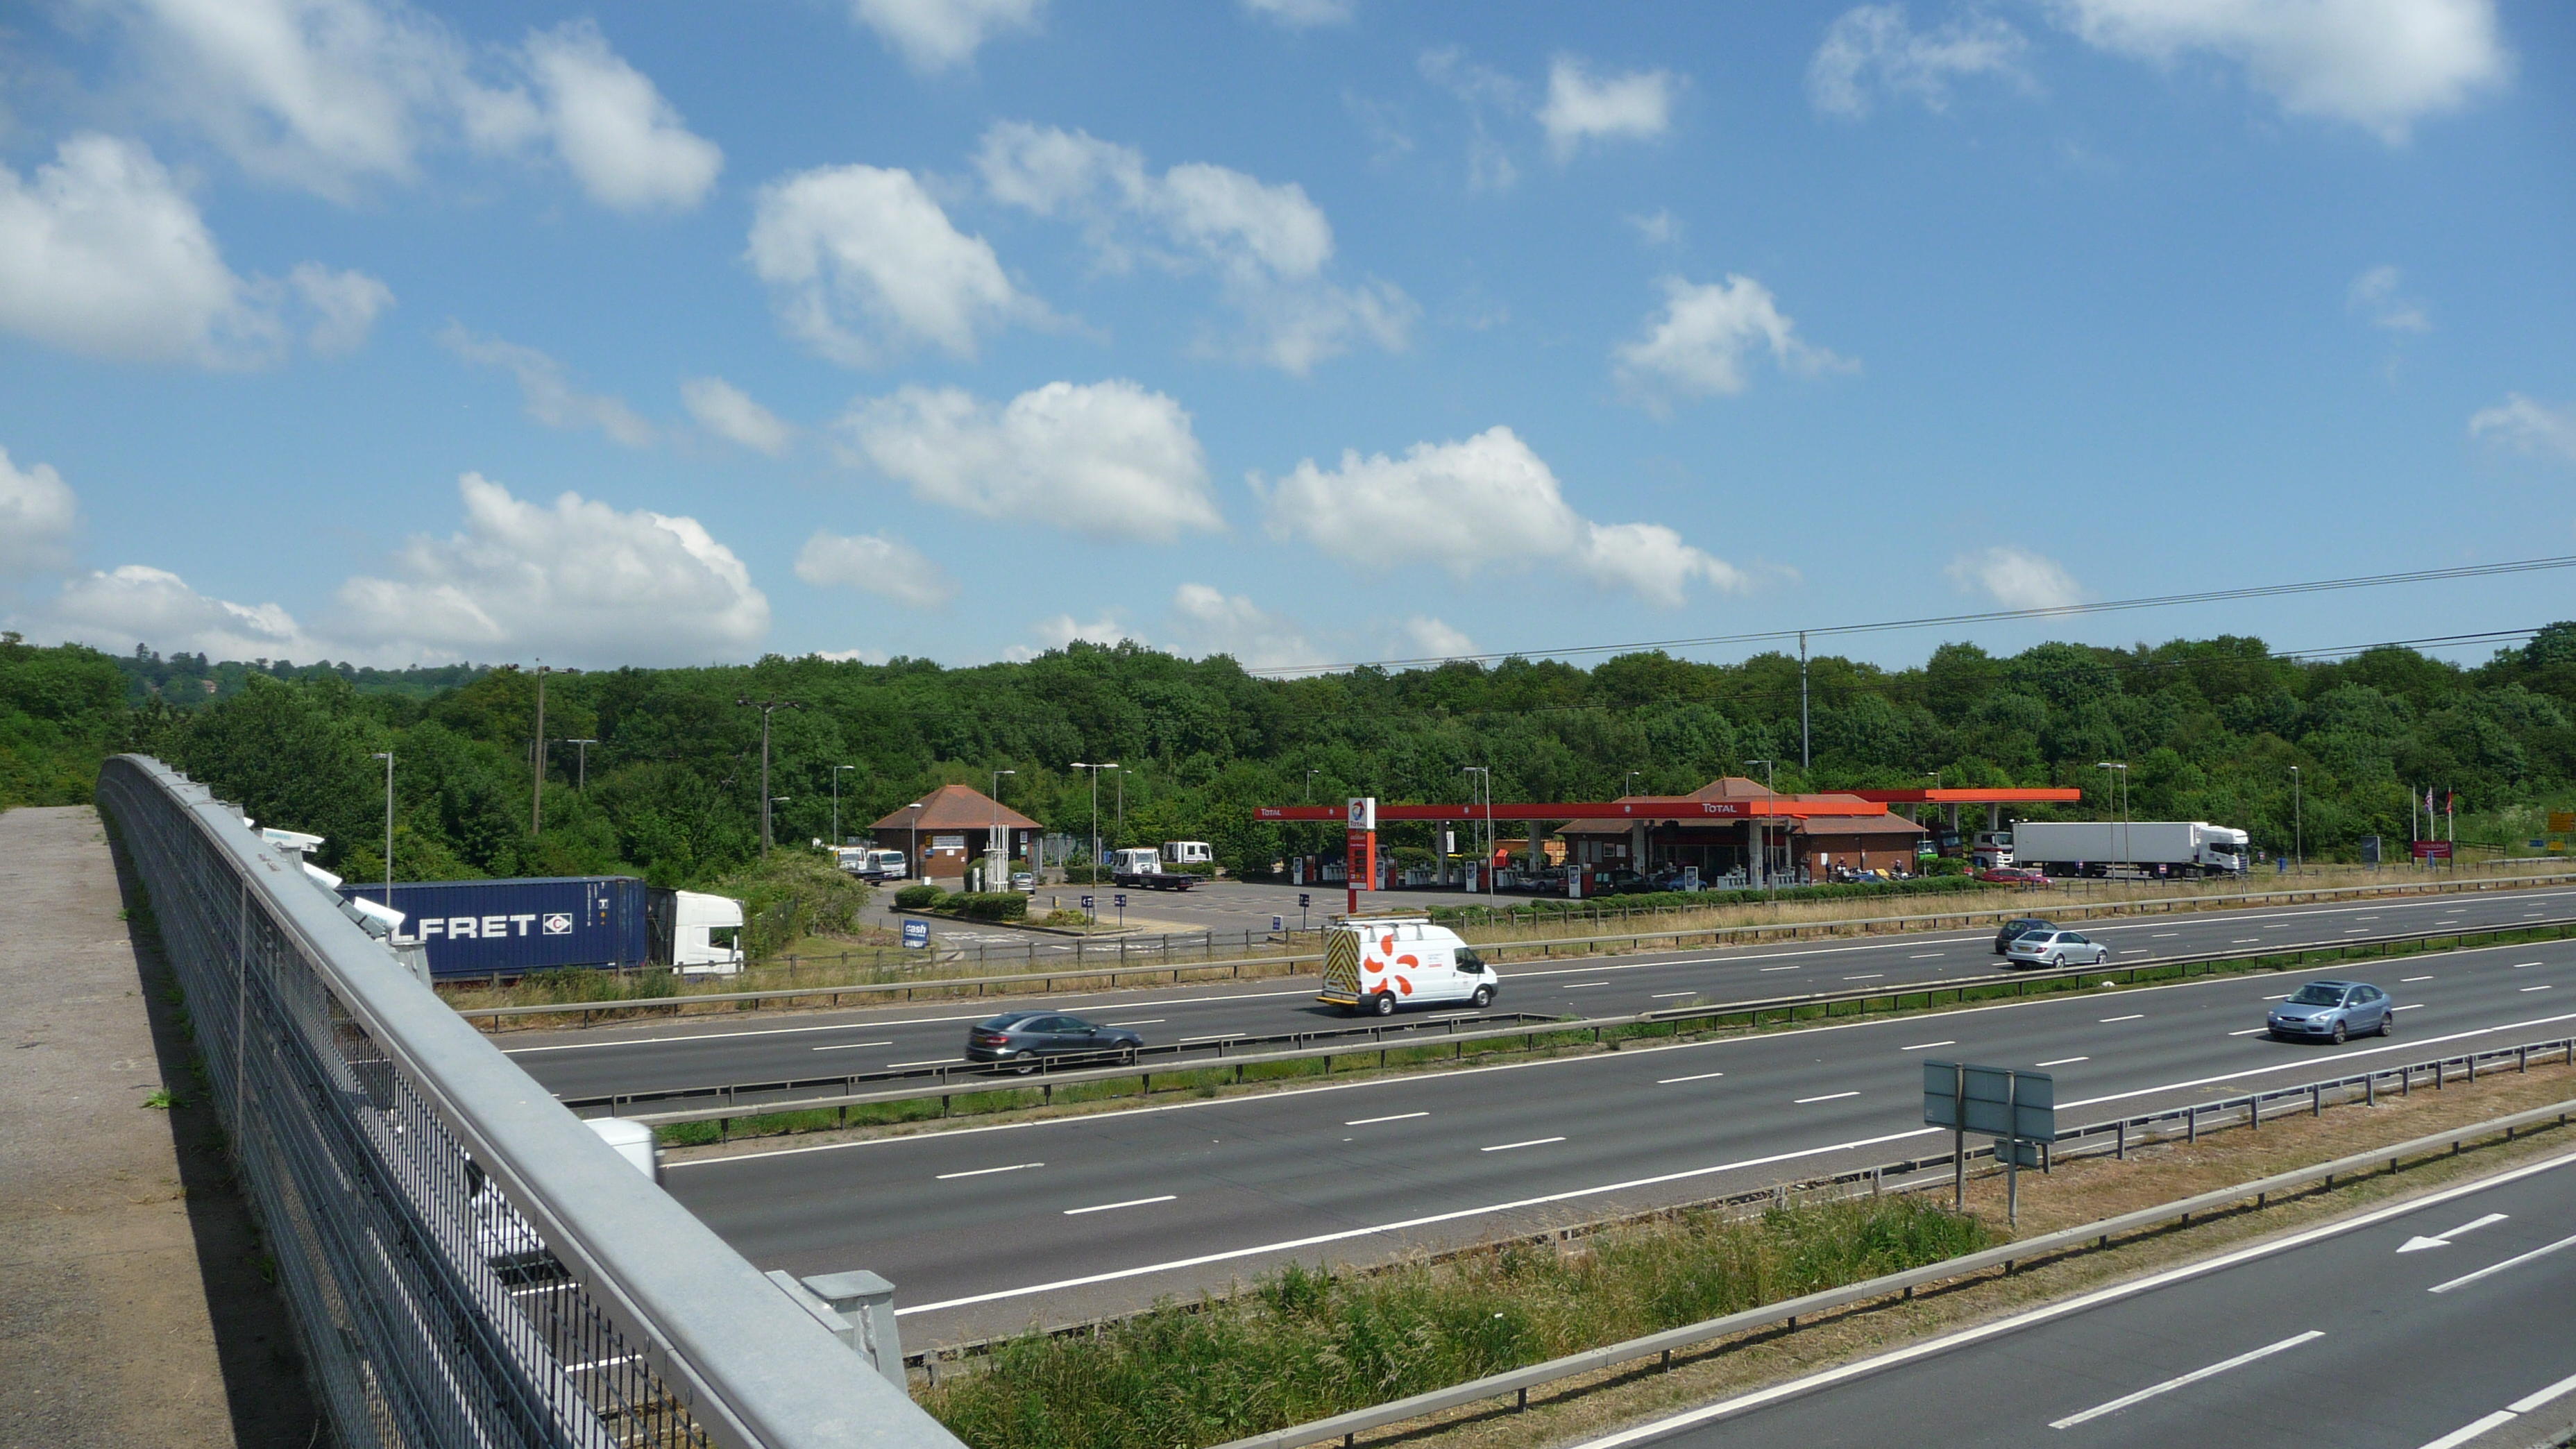 M25 clacket lane services